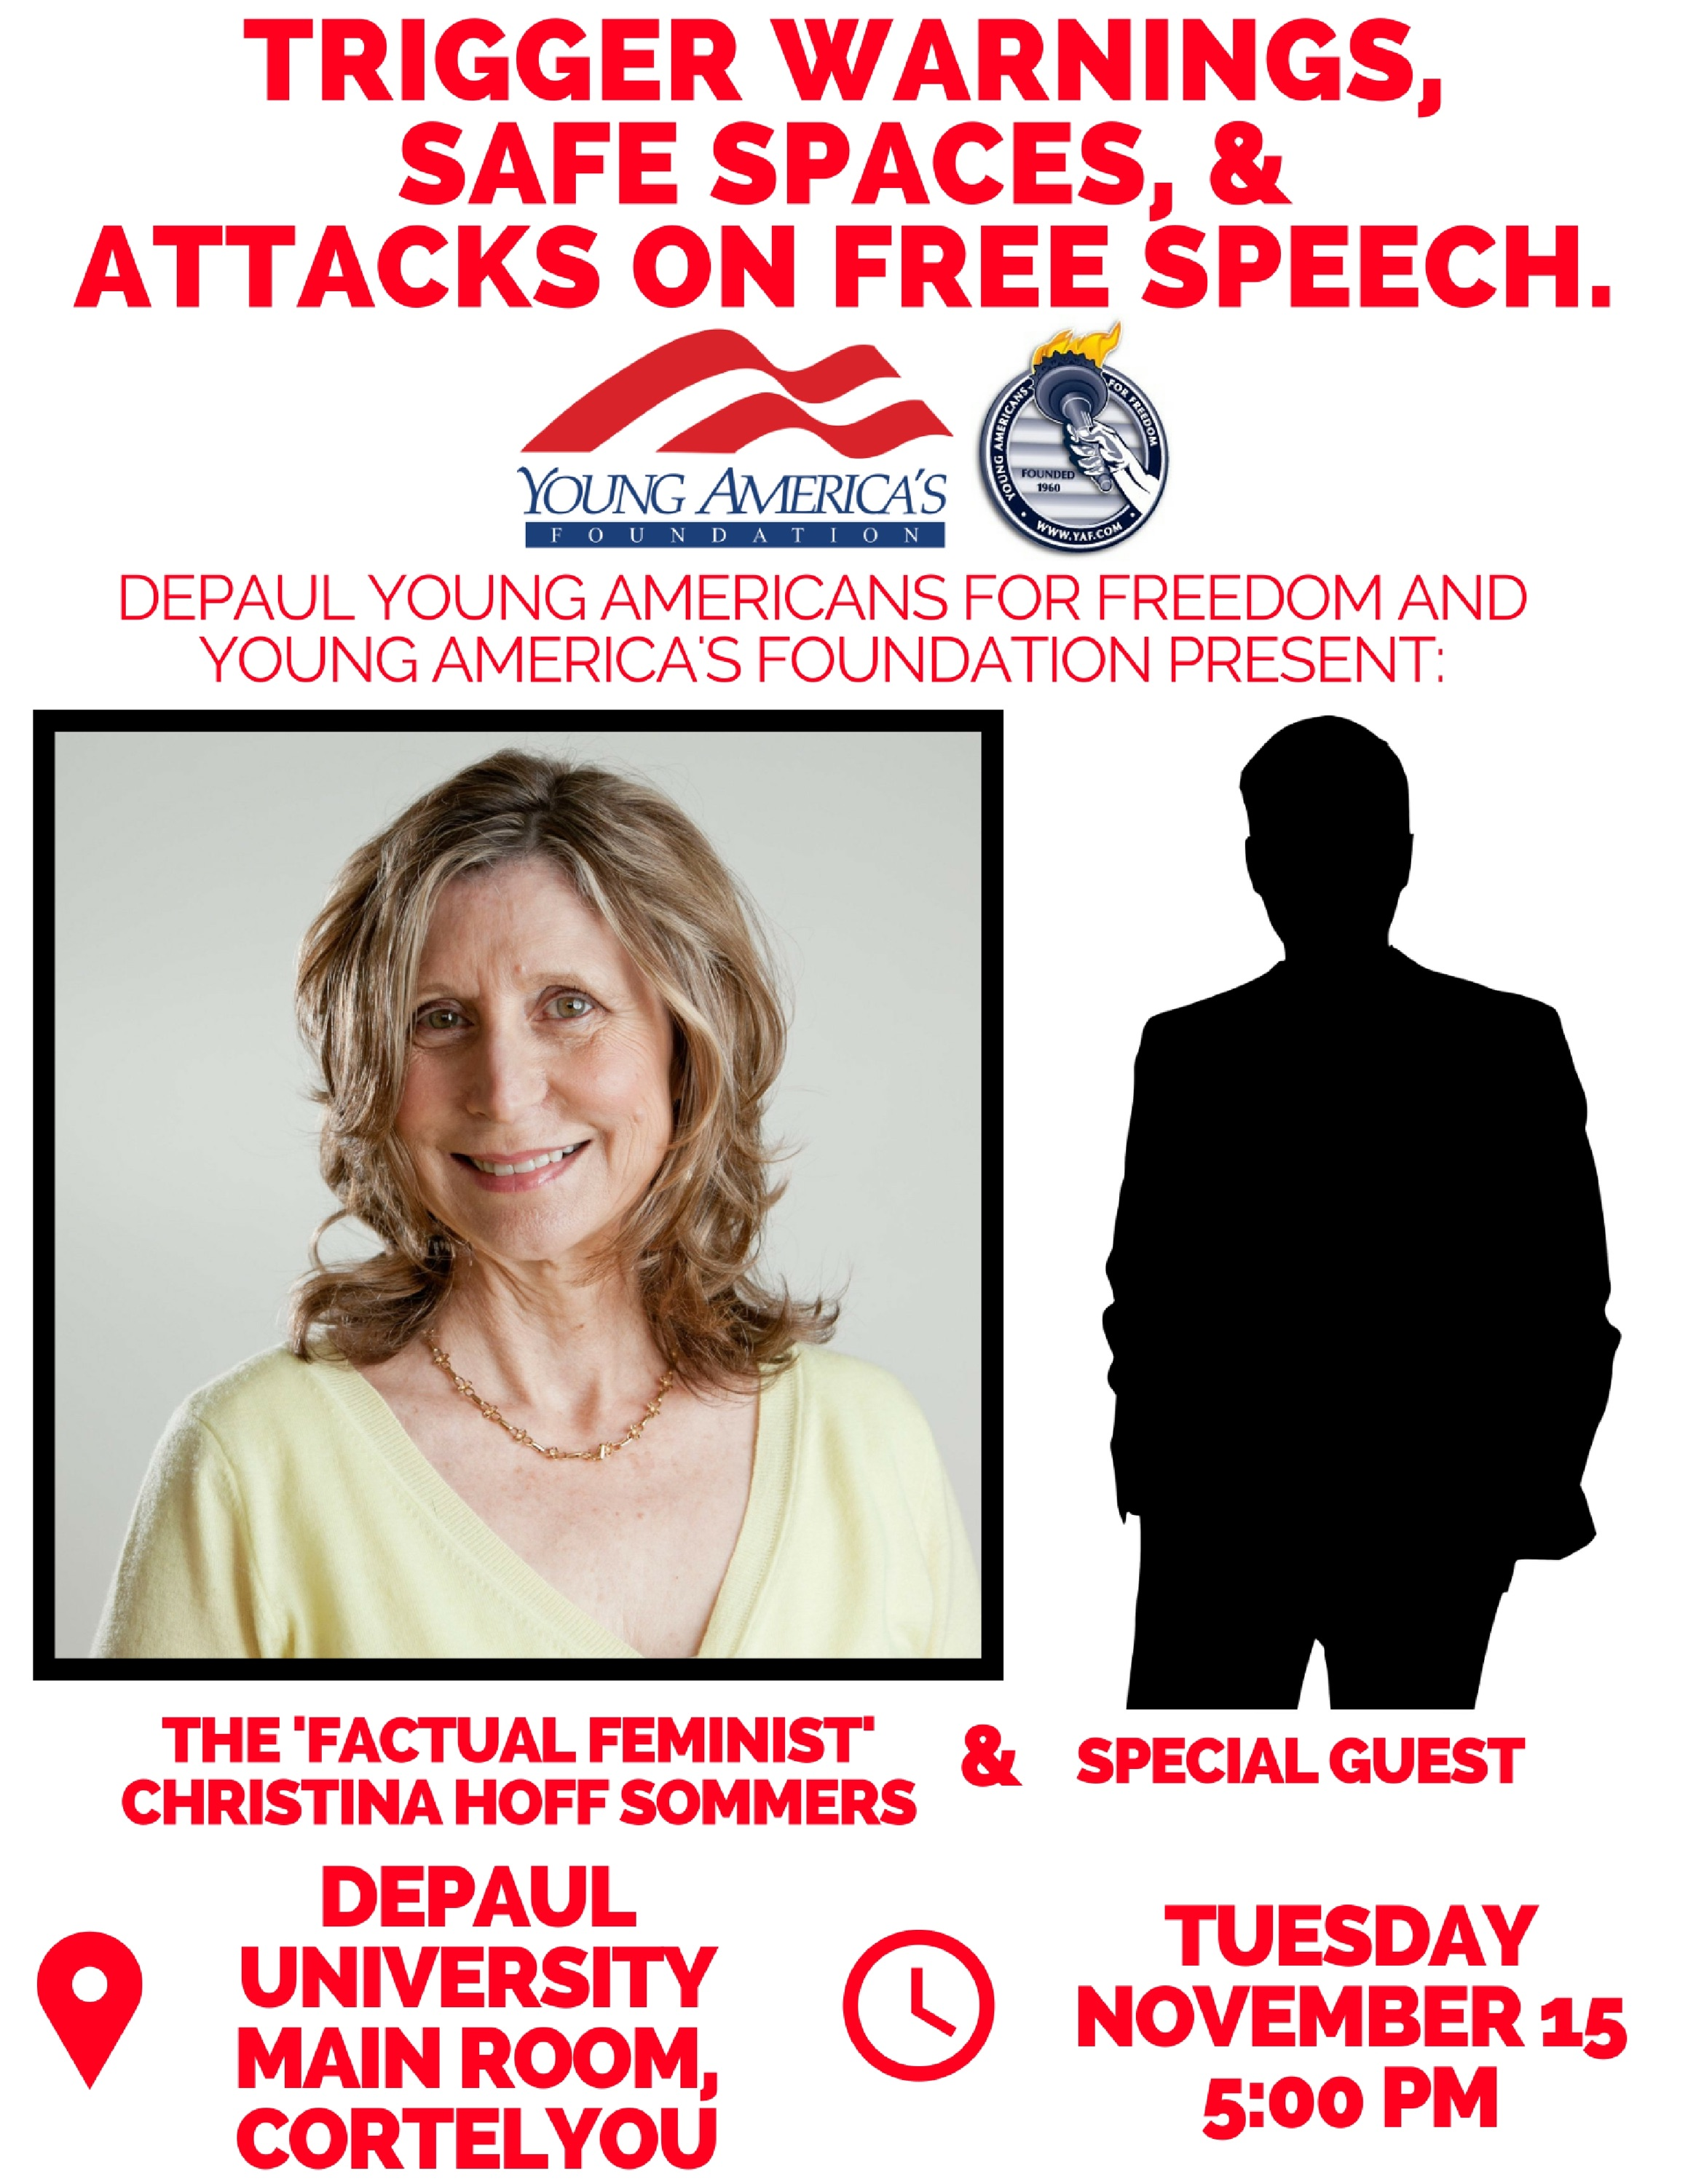 liberal-academia-is-infringing-your-free-speech-rights-jpg